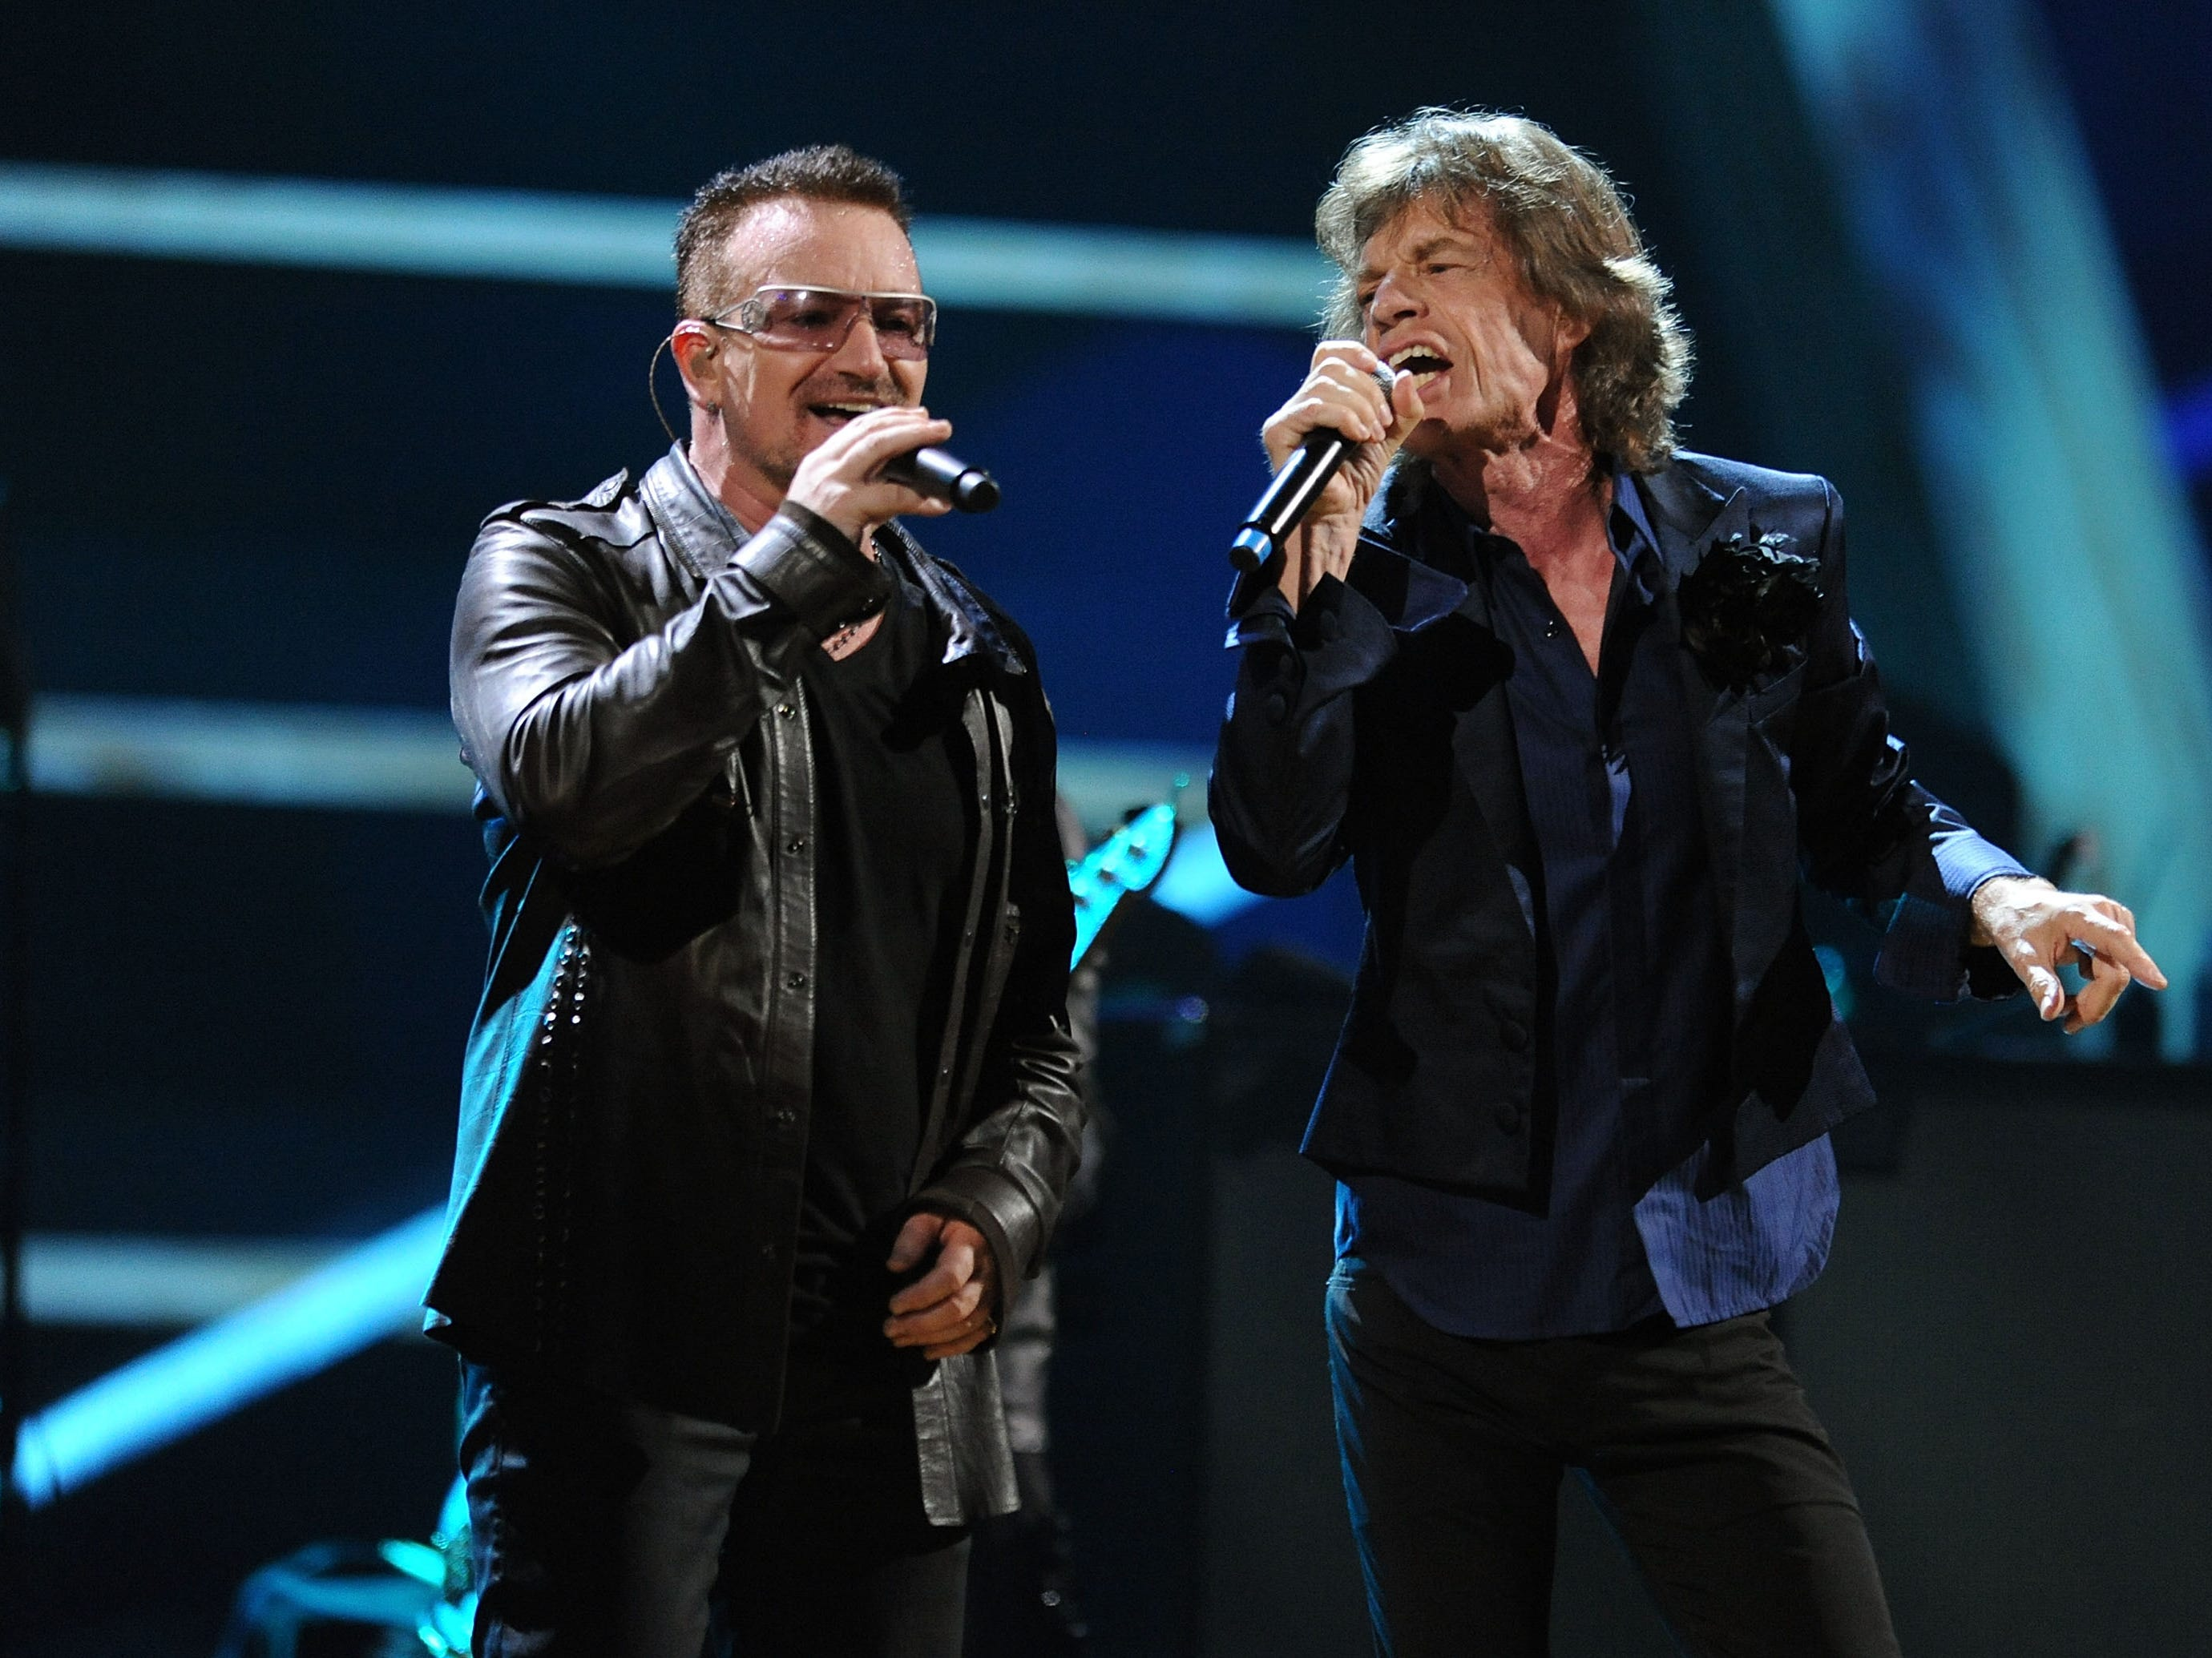 NEW YORK - OCTOBER 30:  Bono of U2 and Mick Jagger of The Rolling Stones perform onstage at the 25th Anniversary Rock & Roll Hall of Fame Concert at Madison Square Garden on October 30, 2009 in New York City.  (Photo by Stephen Lovekin/Getty Images) ORG XMIT: 92486628 GTY ID: 0058784105.jpg